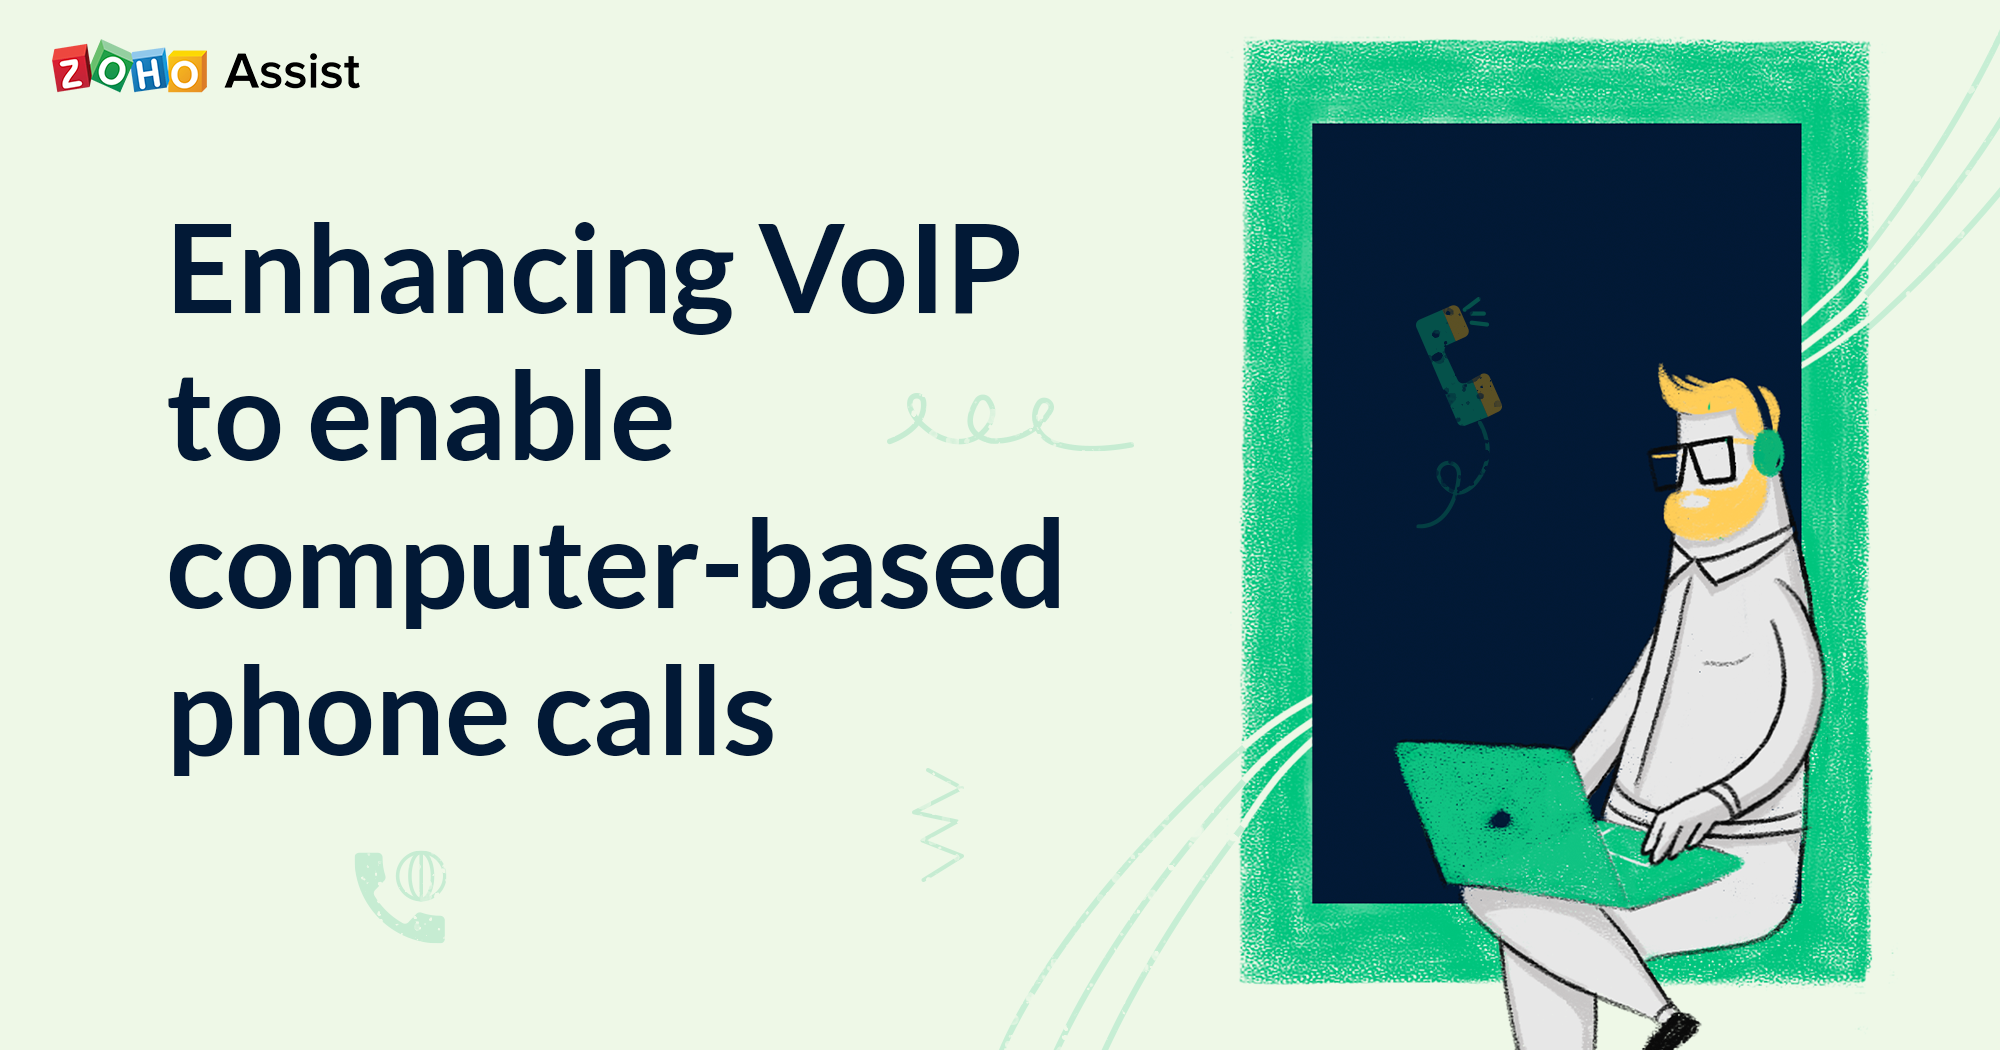 High Quality VoIP-based phone calls to enable constant communication